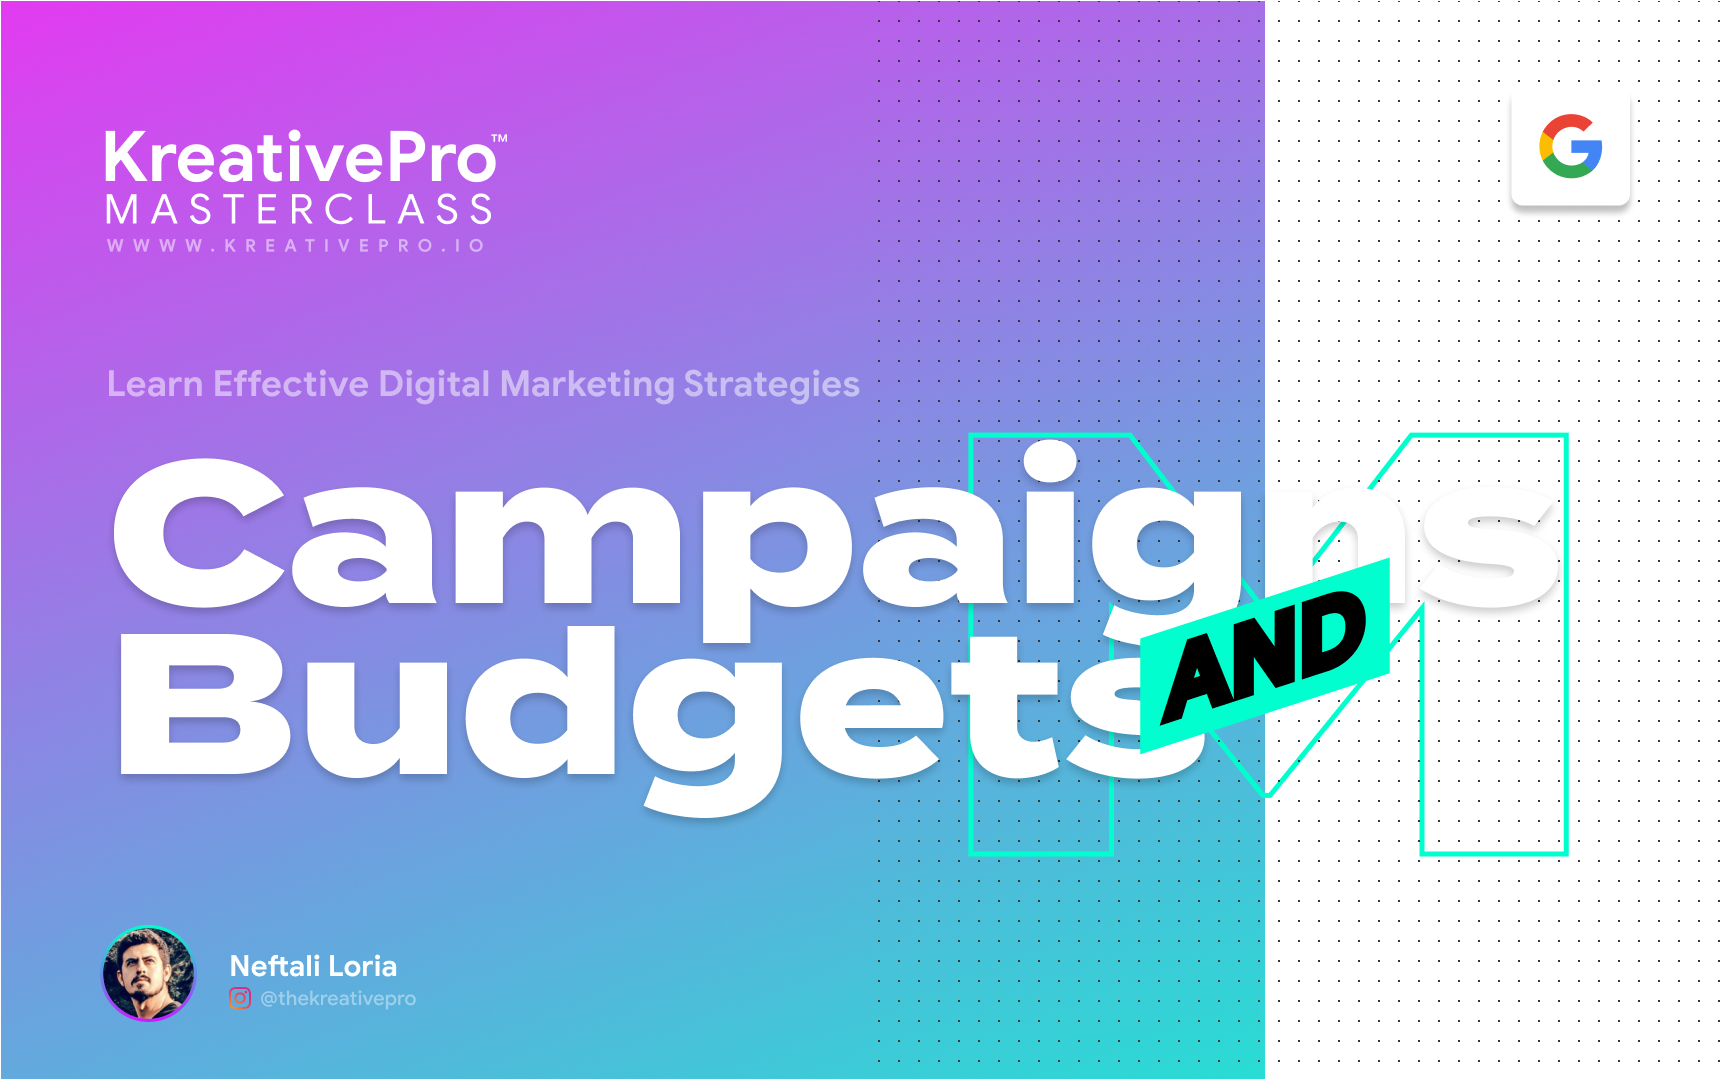 Marketing 4.0 - Campaigns and Budgets